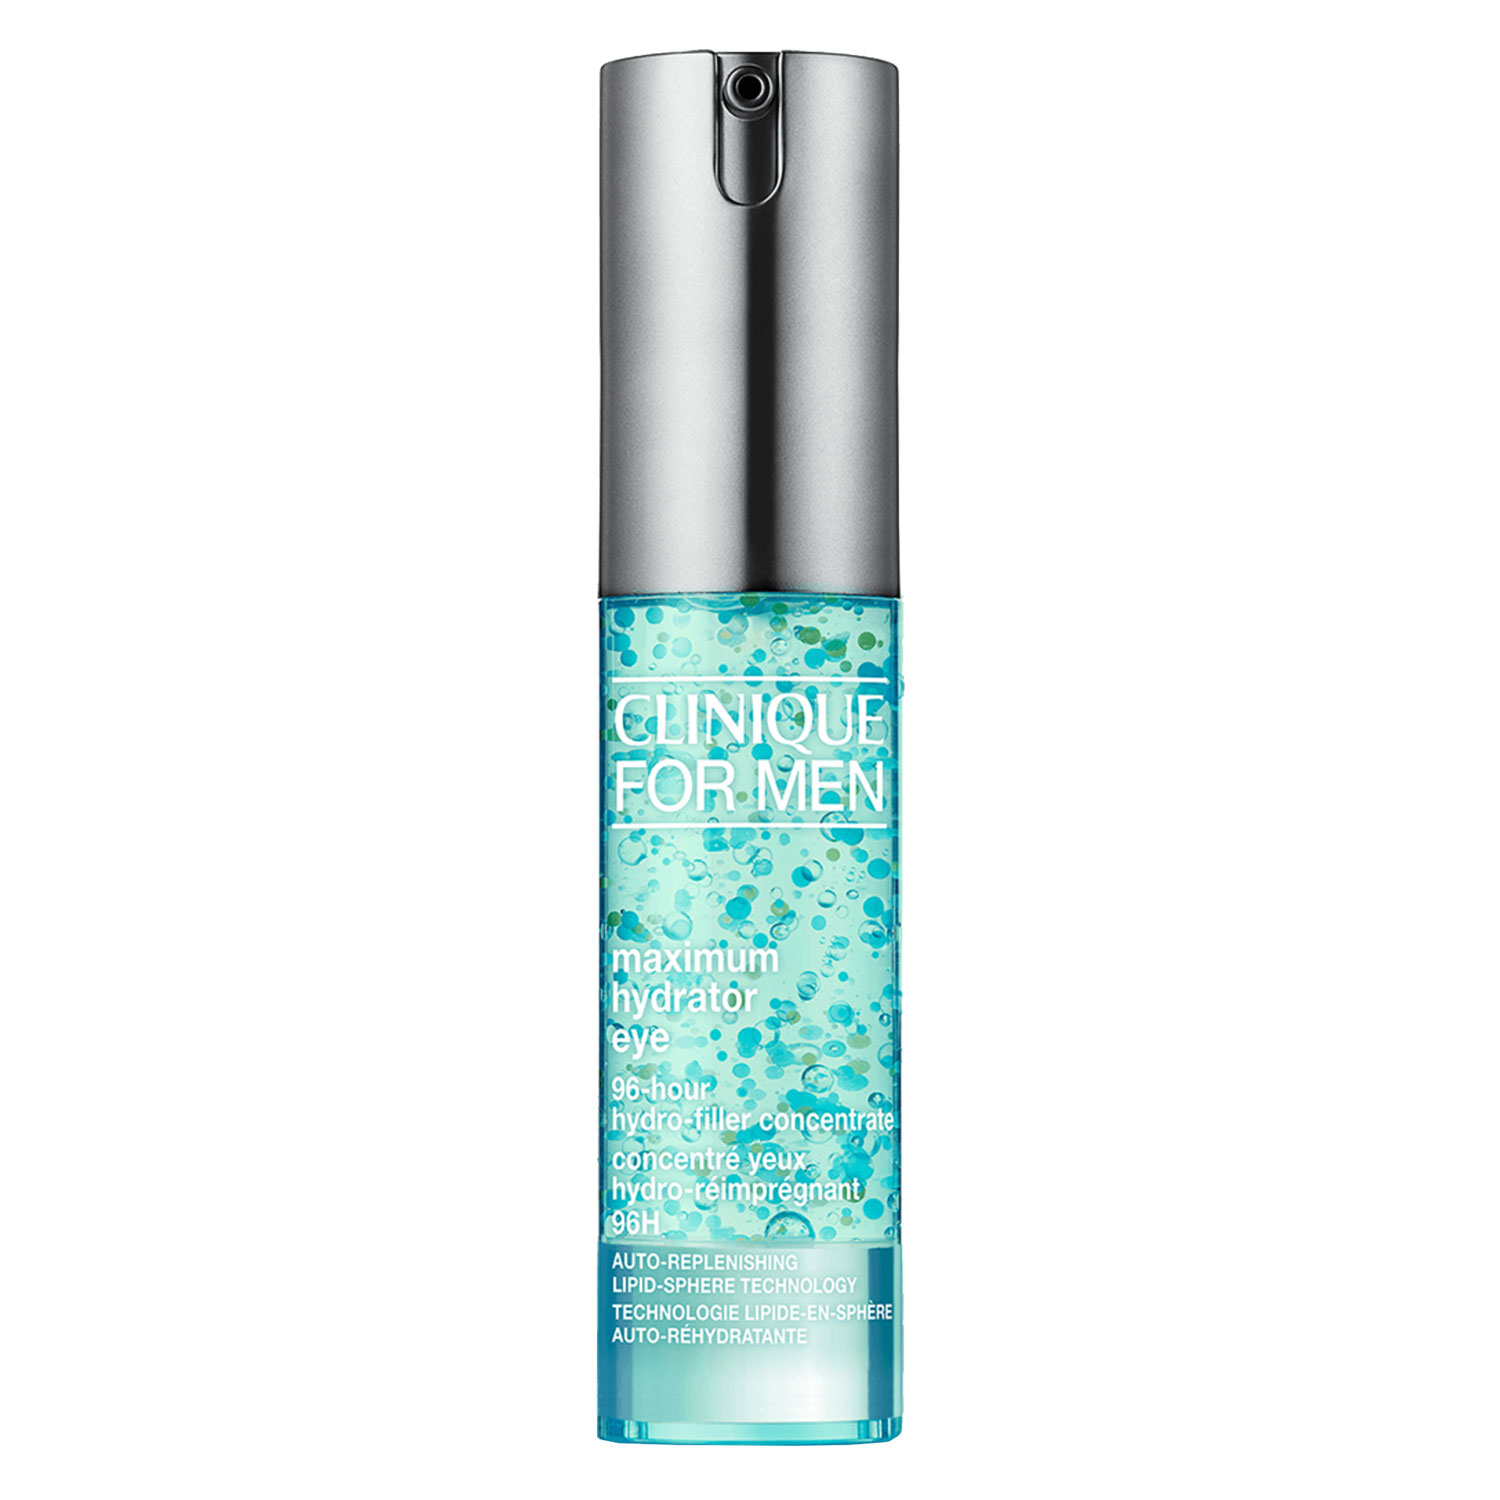 Clinique For Men - Maximum Hydrator Eye 96-Hour Hydro-Filler Concentrate - 15ml